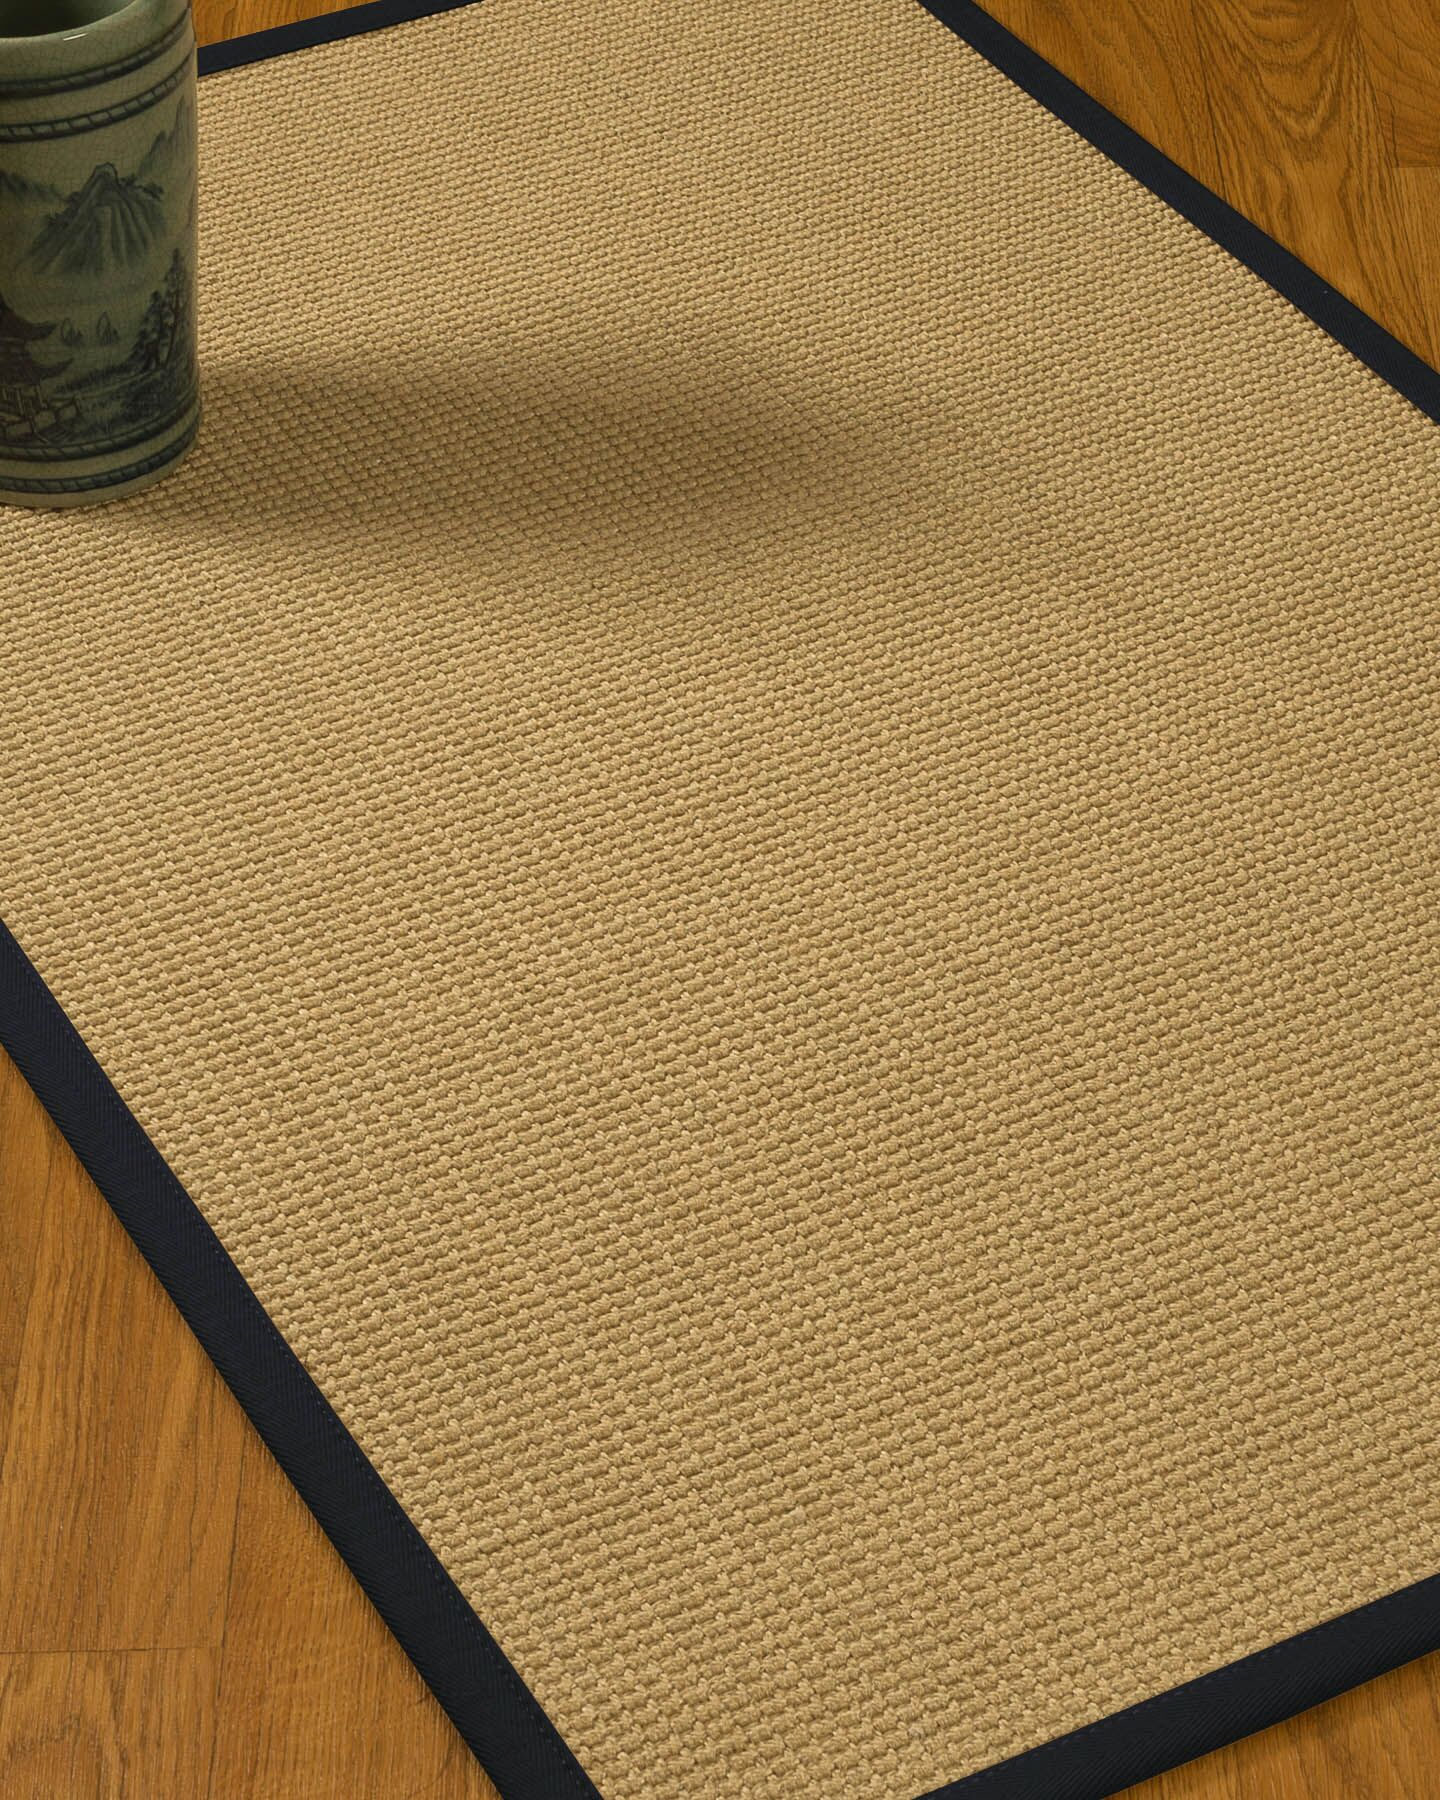 Jacobs Border Hand-Woven Beige/Midnight Blue Area Rug Rug Size: Rectangle 12' x 15', Rug Pad Included: Yes